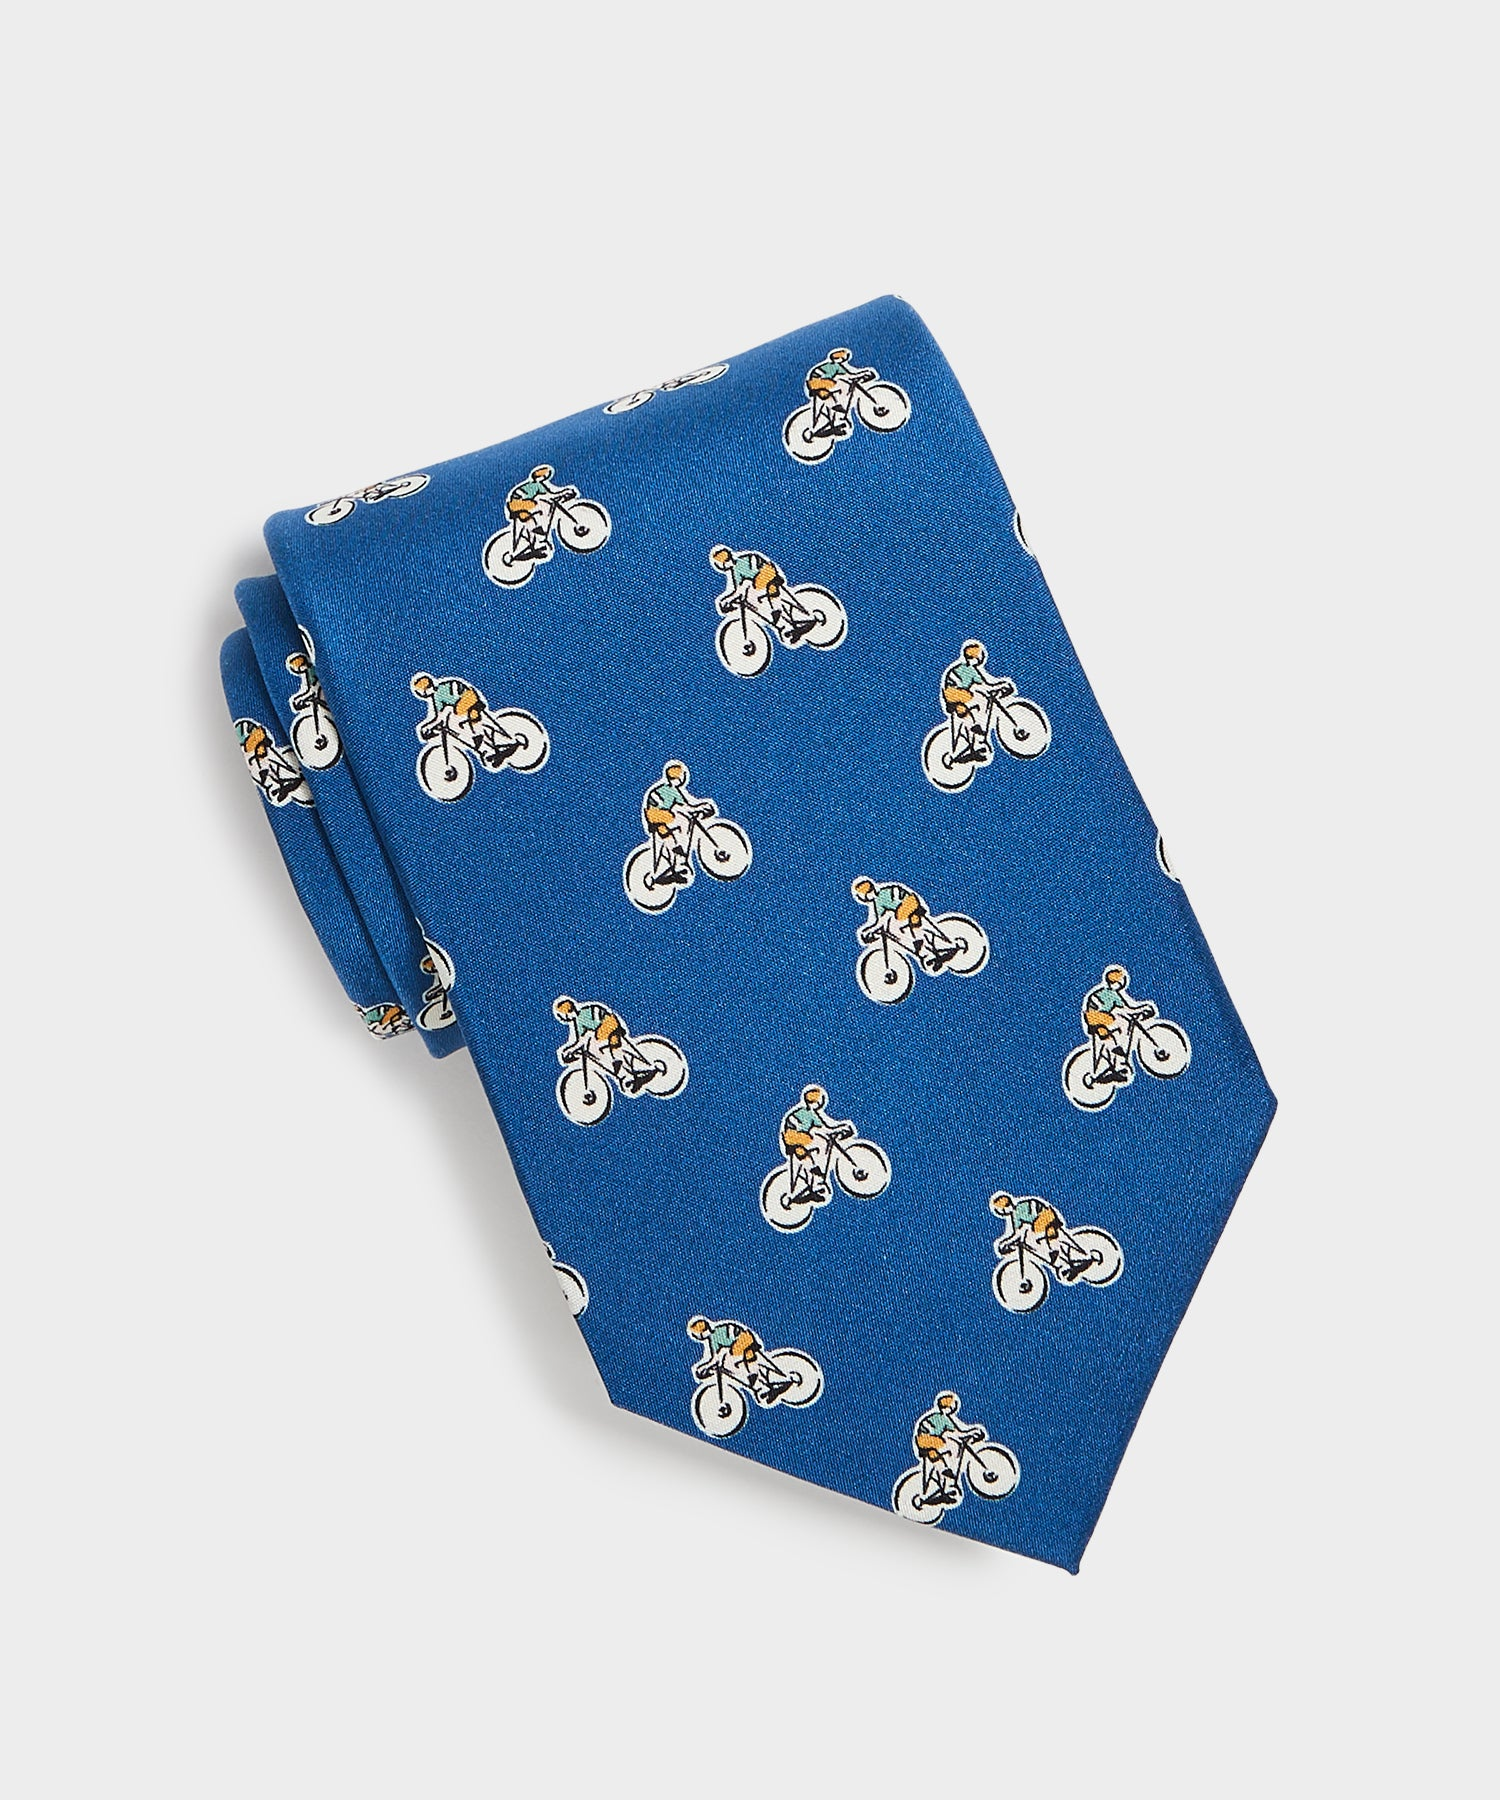 Drake's Bicycle Print Tie in Blue